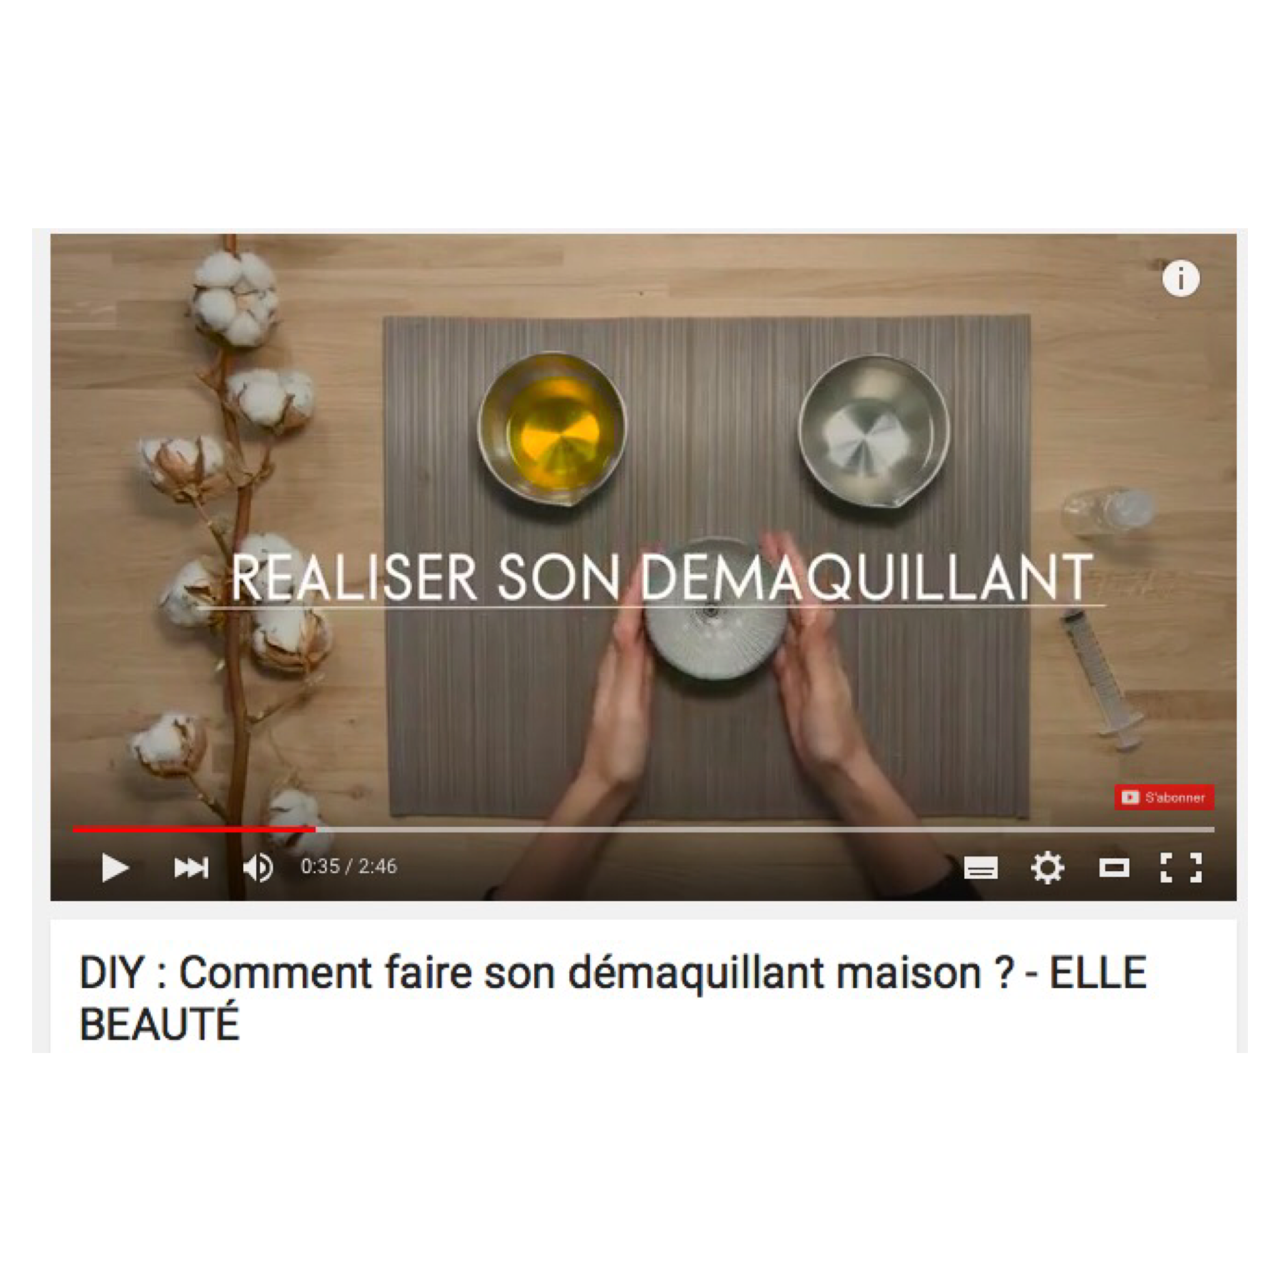 DIY : Comment faire son démaquillant maison ?